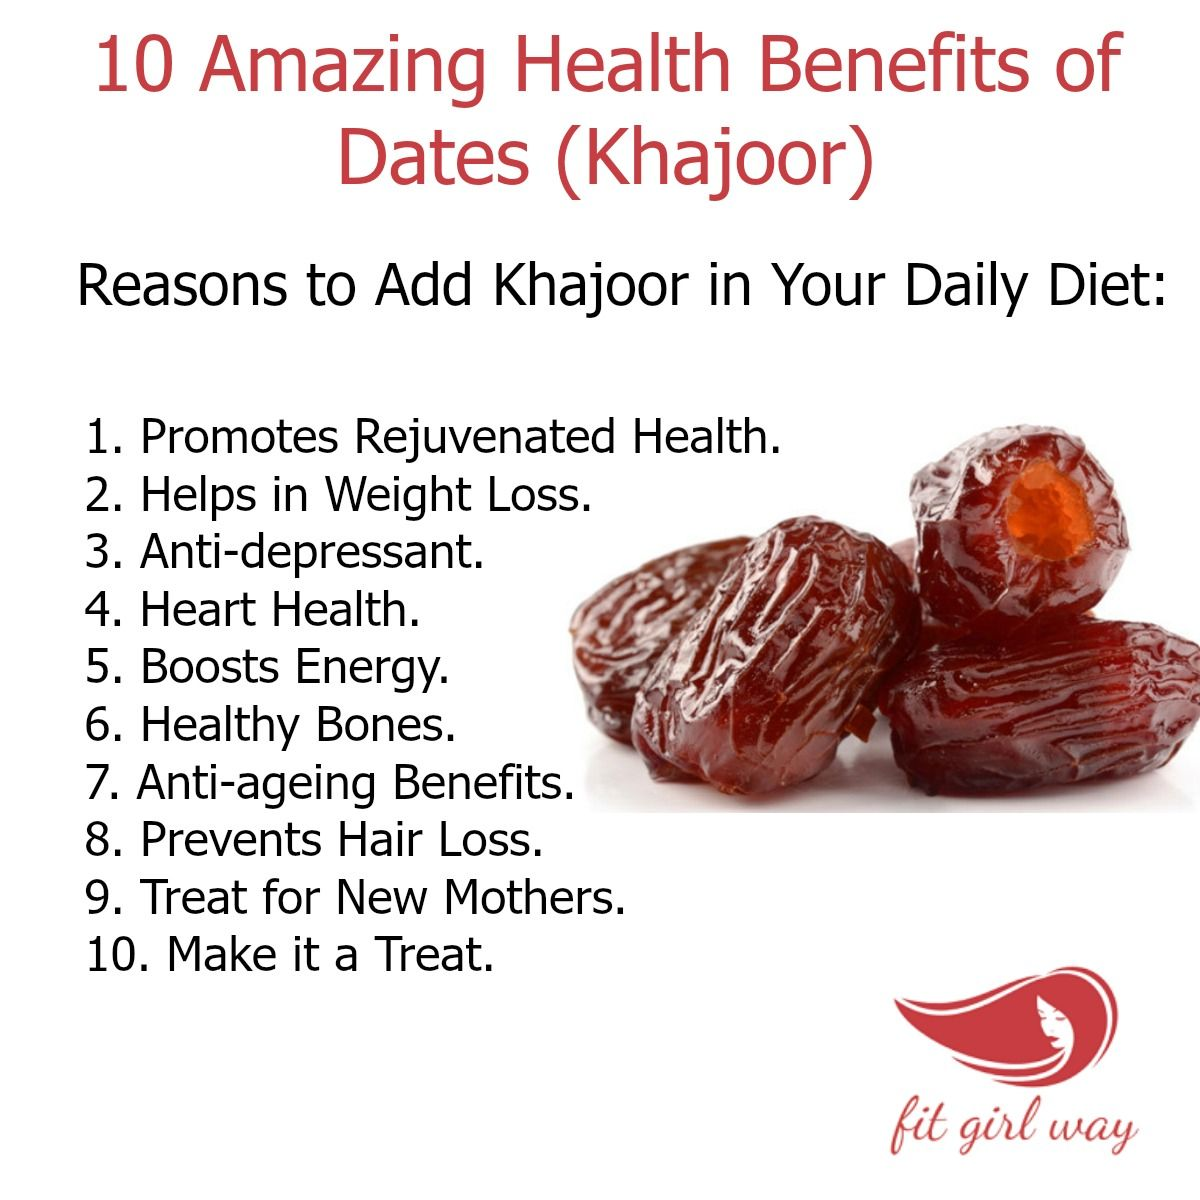 Weight loss benefits of dates